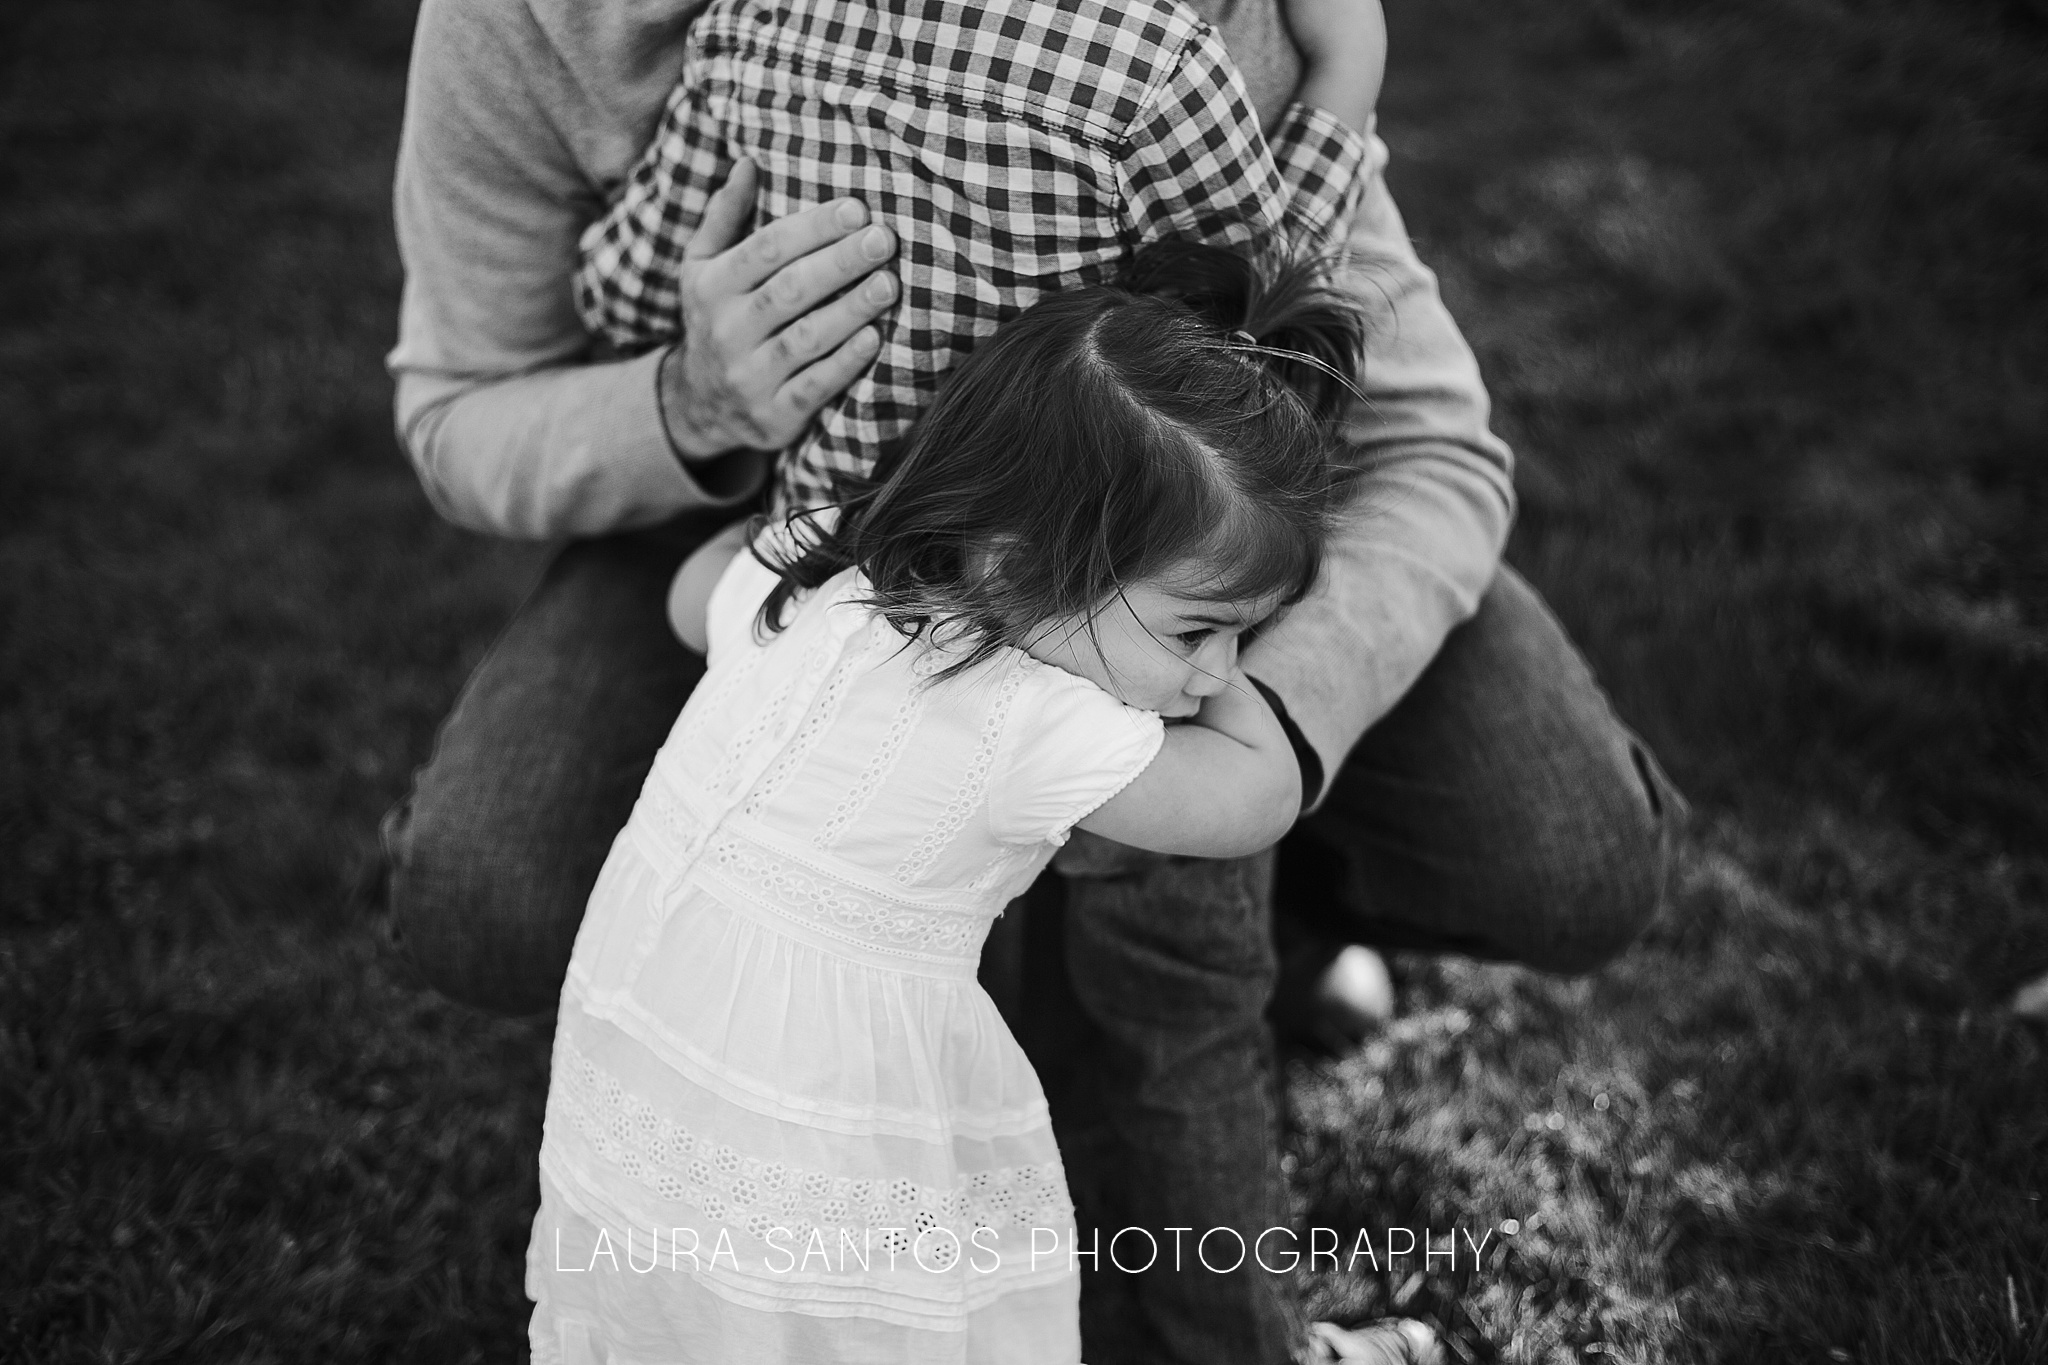 Laura Santos Photography Portland Oregon Family Photographer_0831.jpg